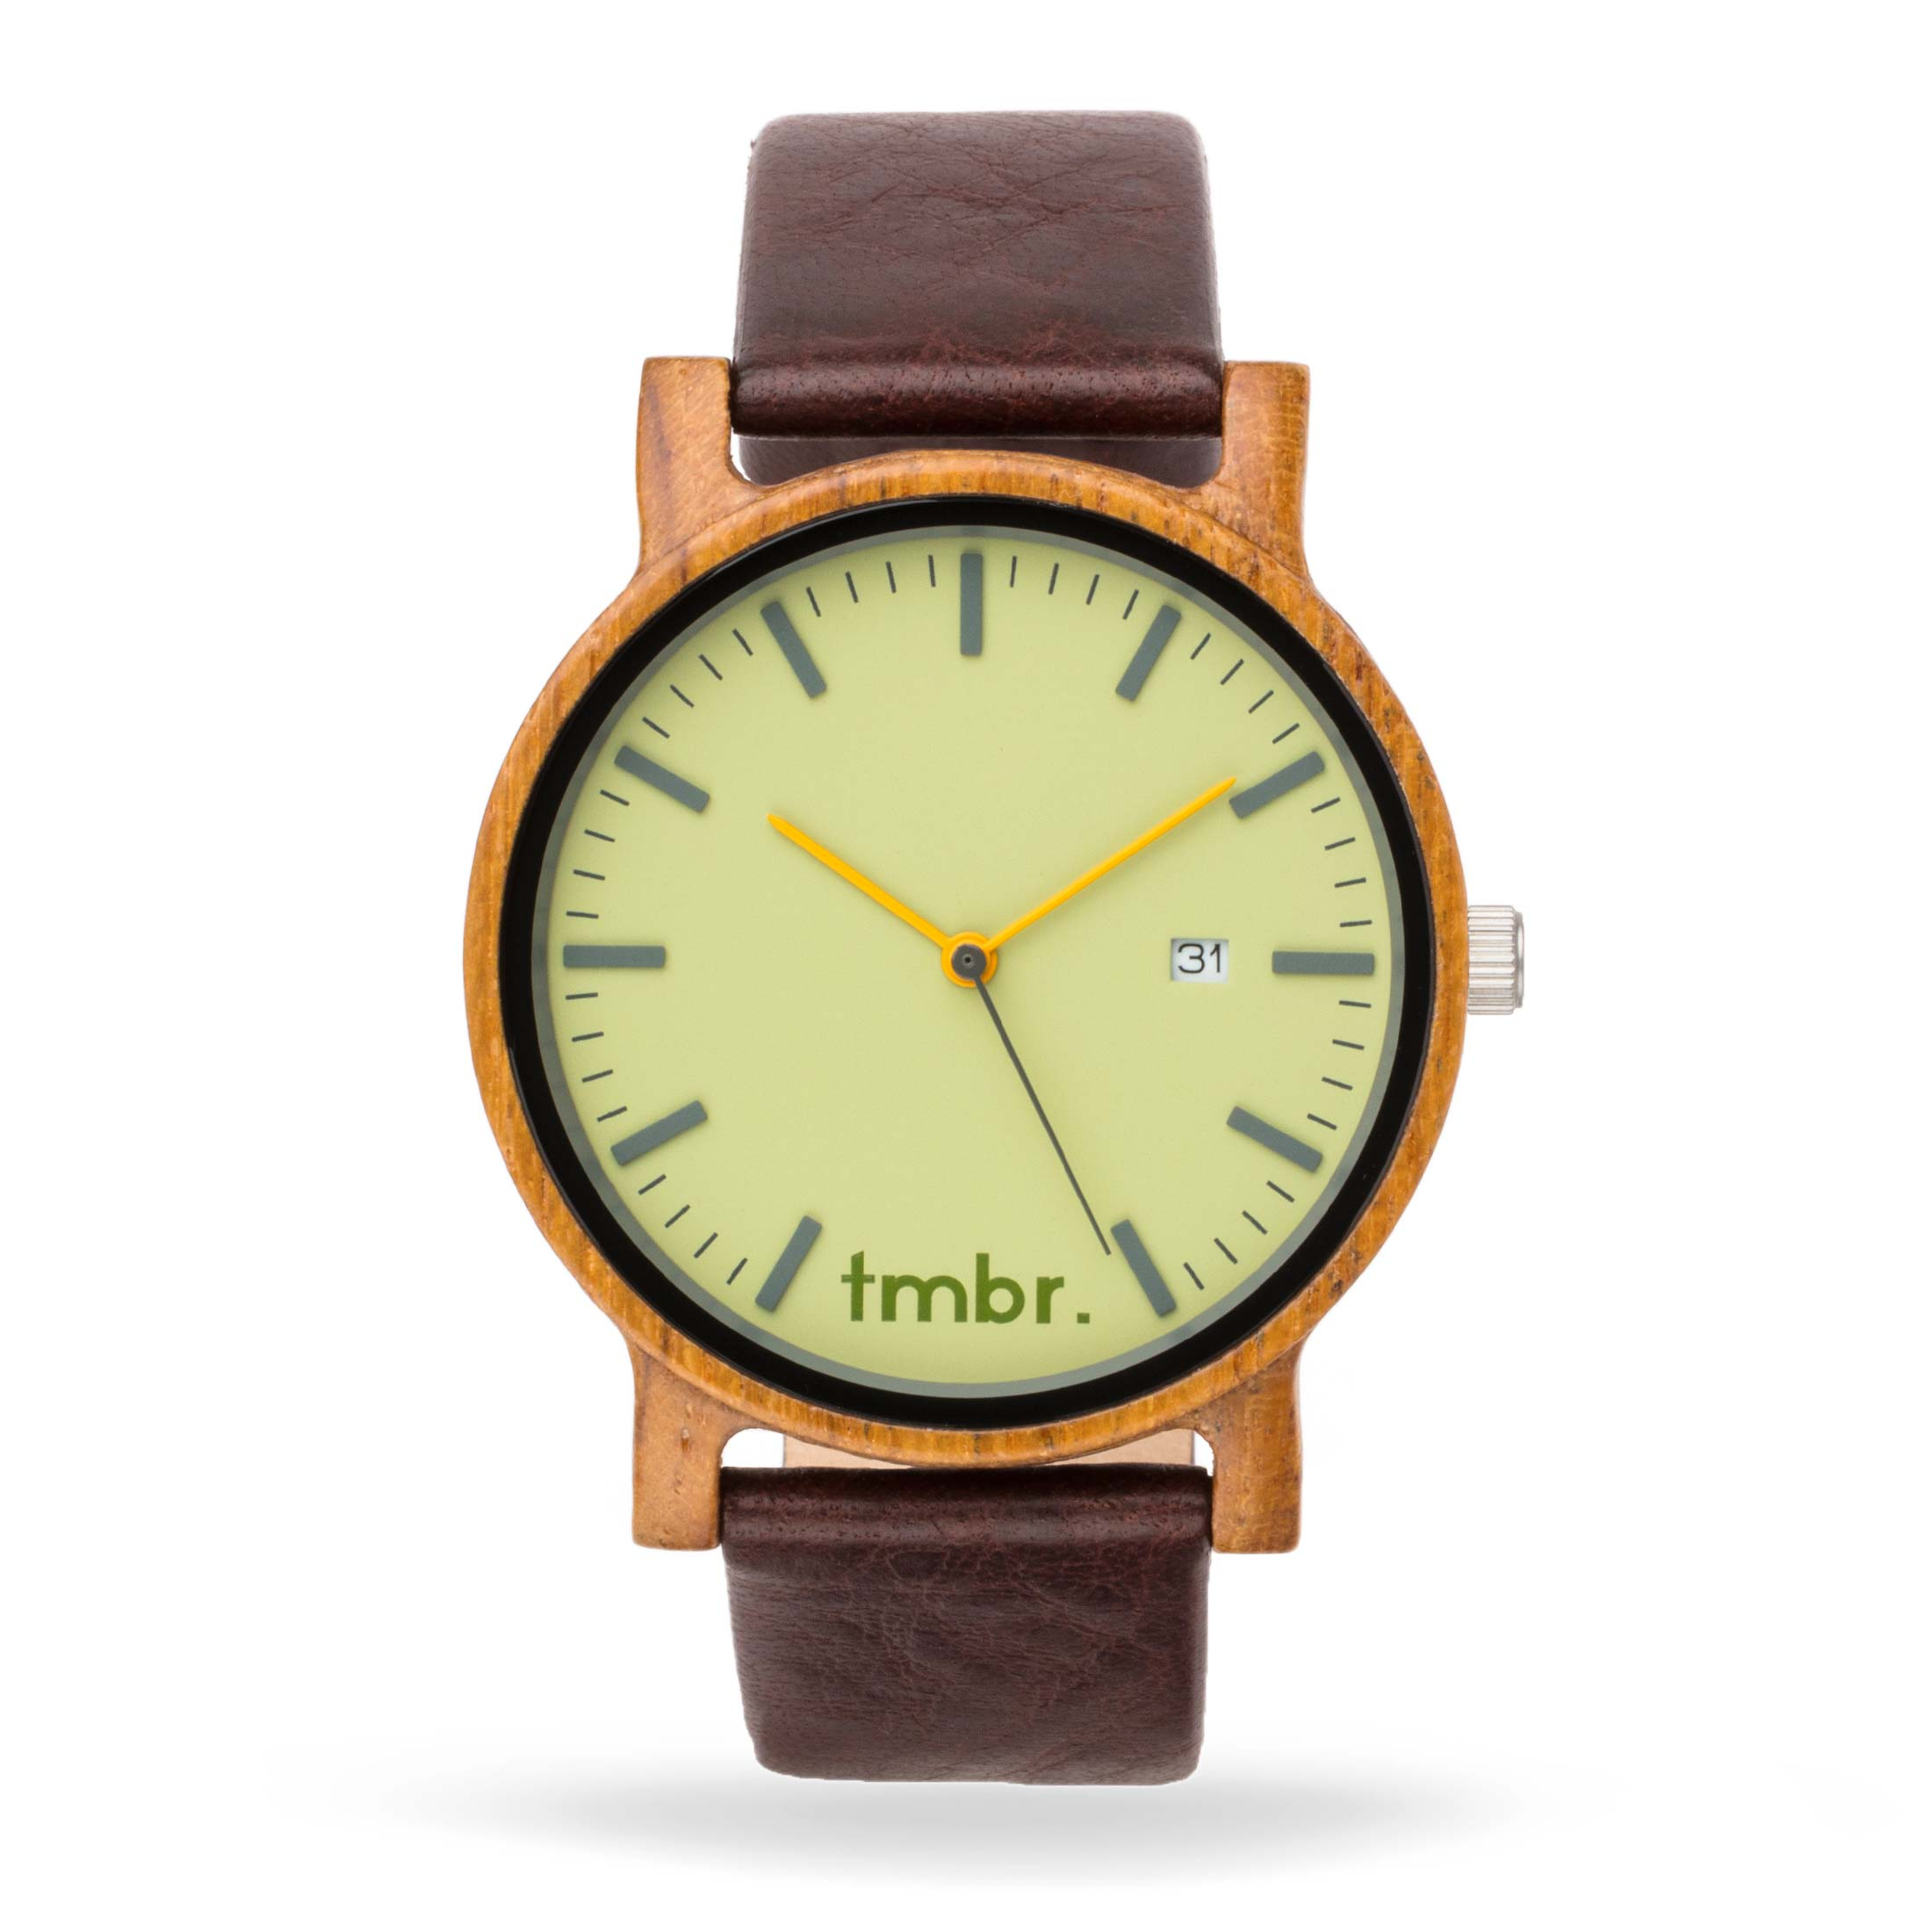 Tmbr Journeyman Wood Watch - Grove Green